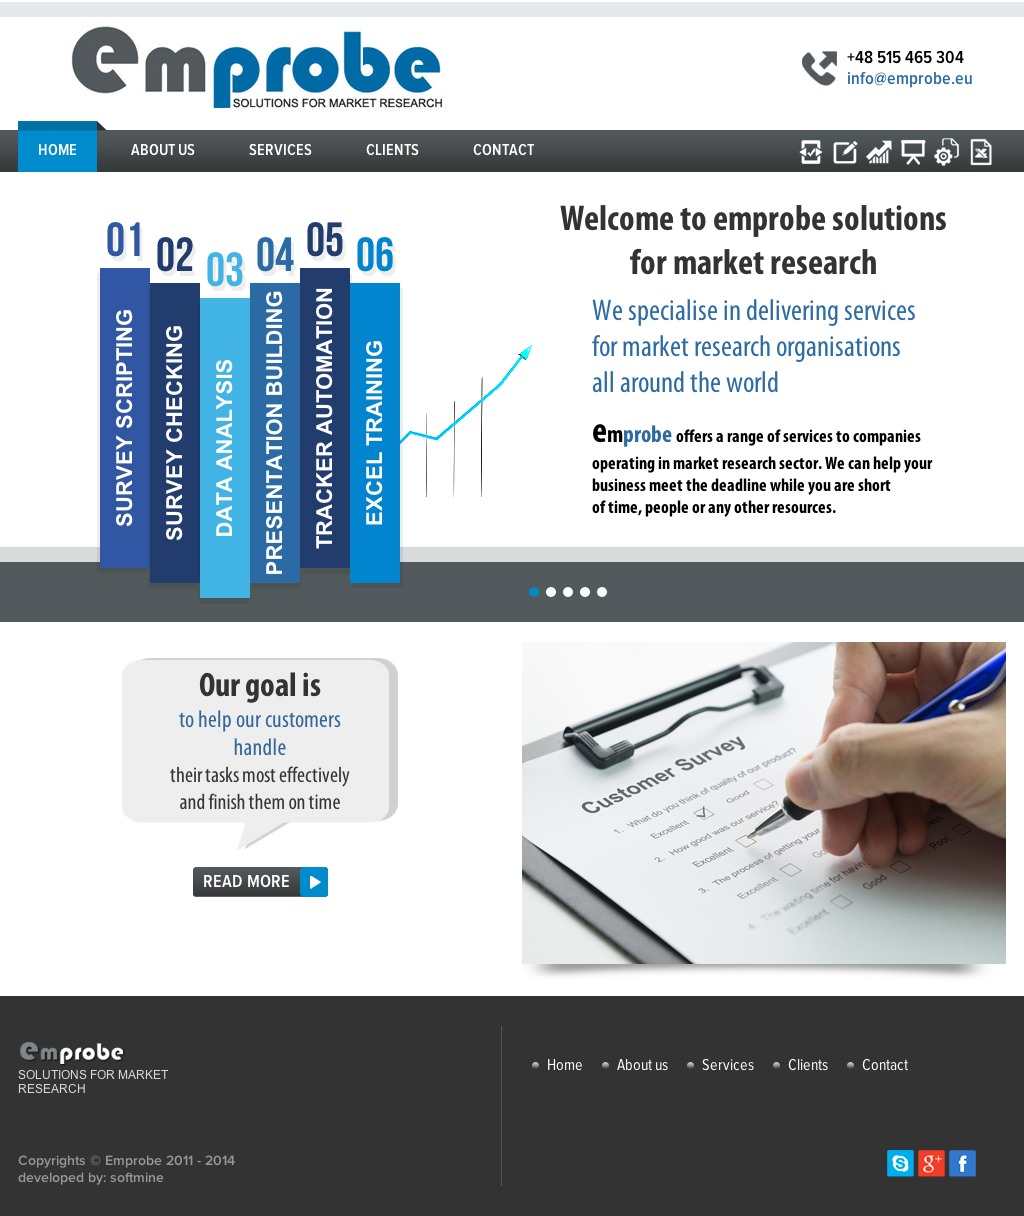 Solutions for market research | Emprobe